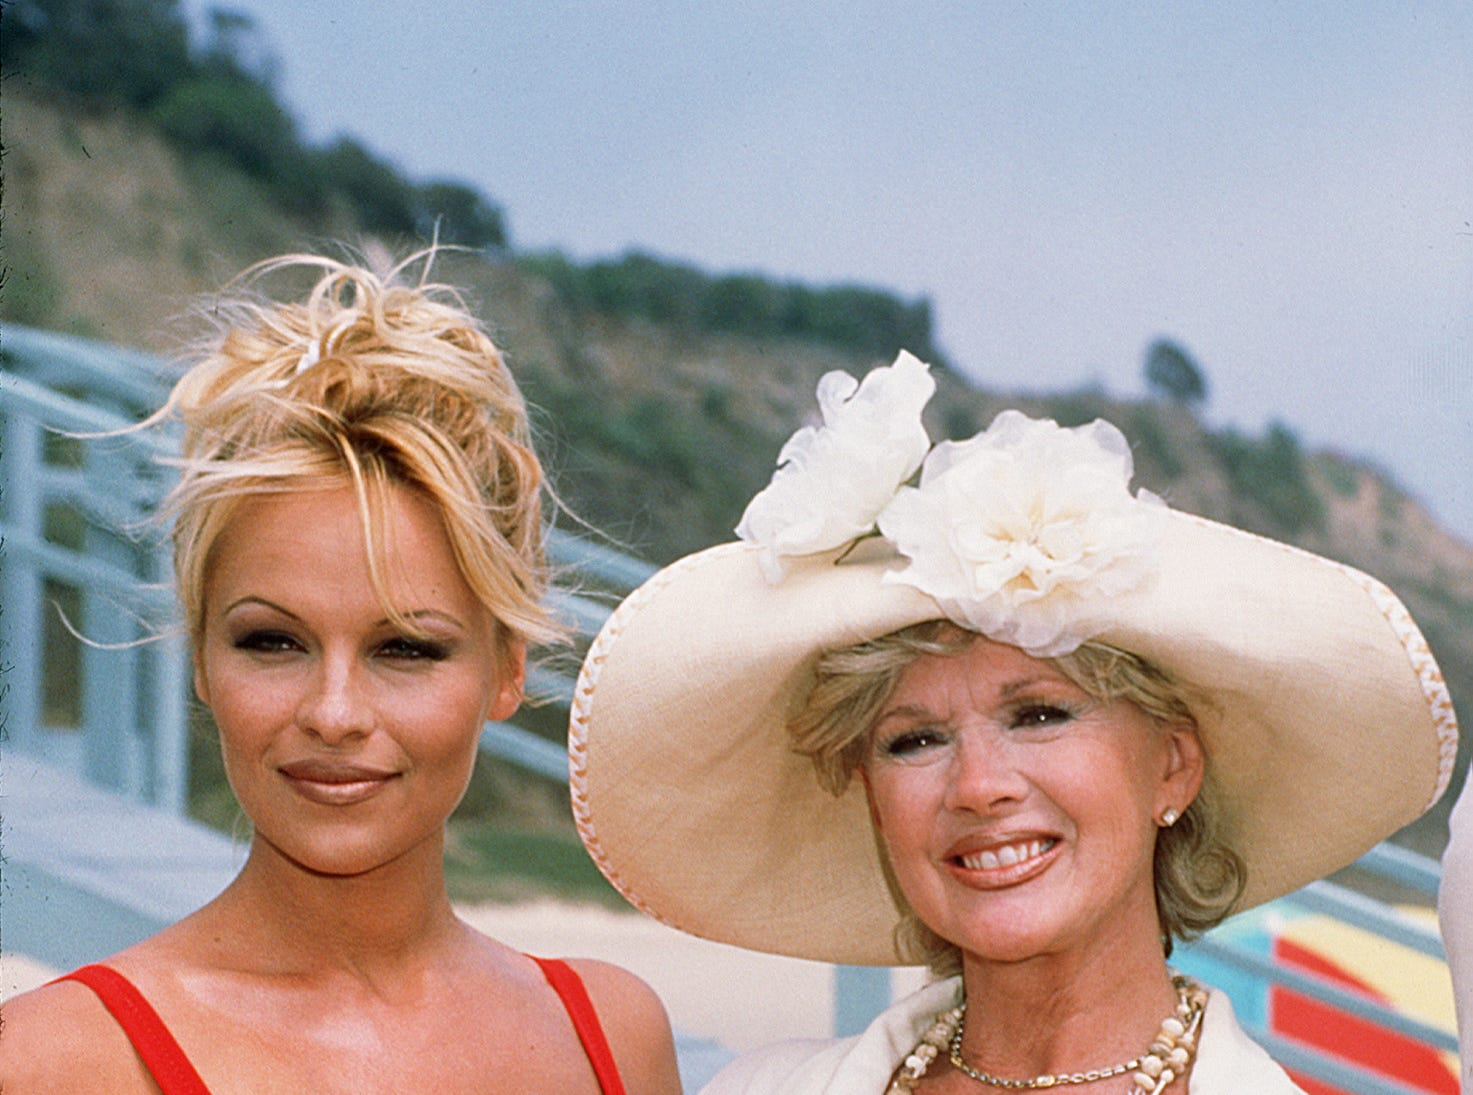 DATE TAKEN: 8/8/96---Pamela Anderson Lee and Connie Stevens on the Baywatch set 8/8/96 ORG XMIT: UT28264